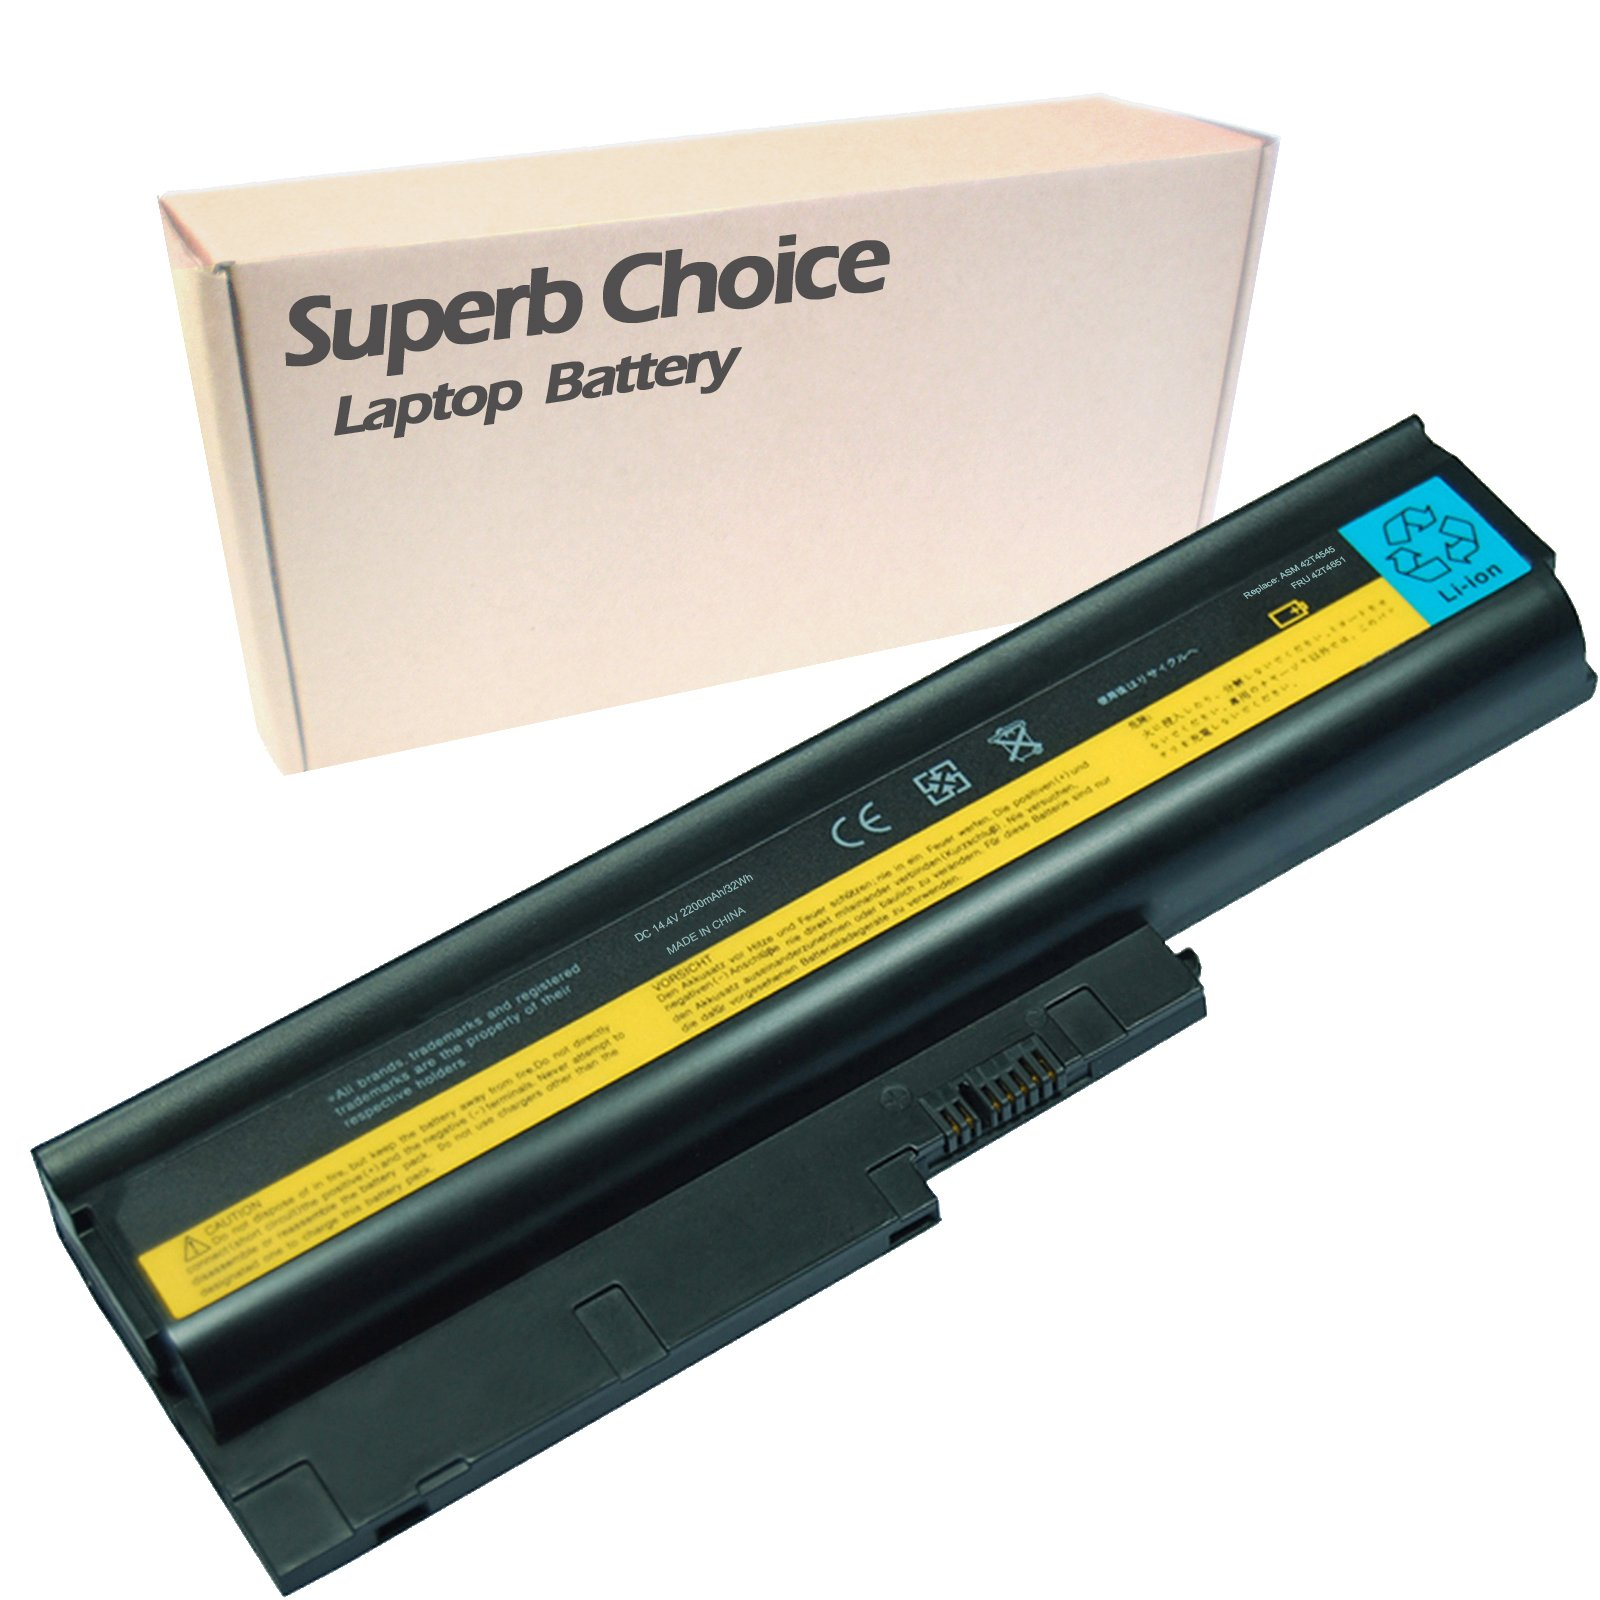 Superb Choice Battery for FRU 42T4656